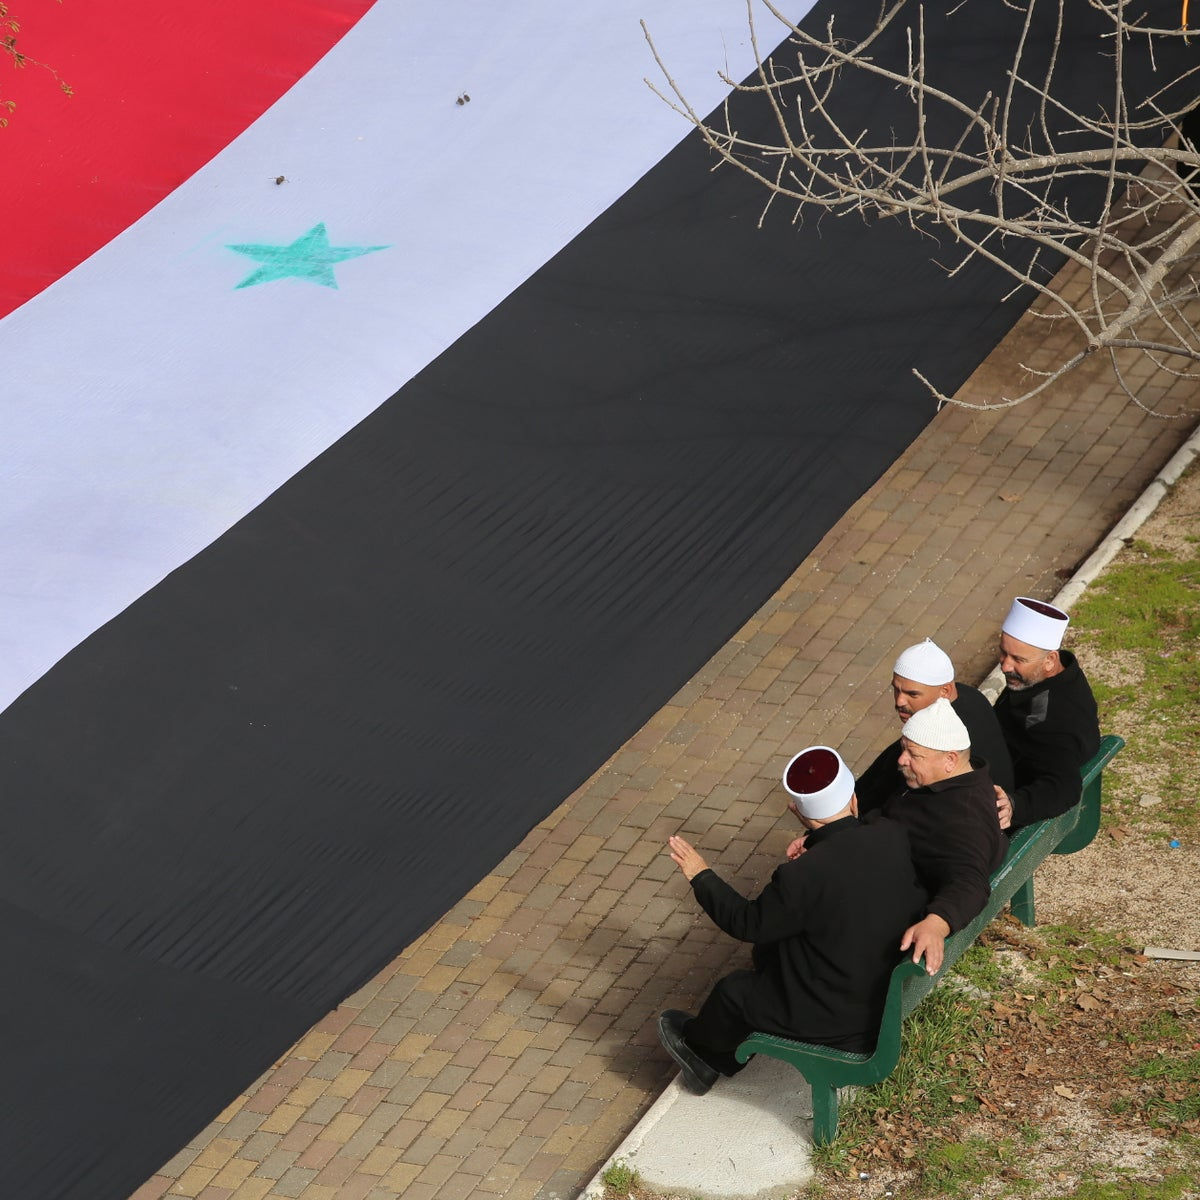 Israeli Druze sit next to a Syrian flag in the village of Buq'ata, February 14, 2016.